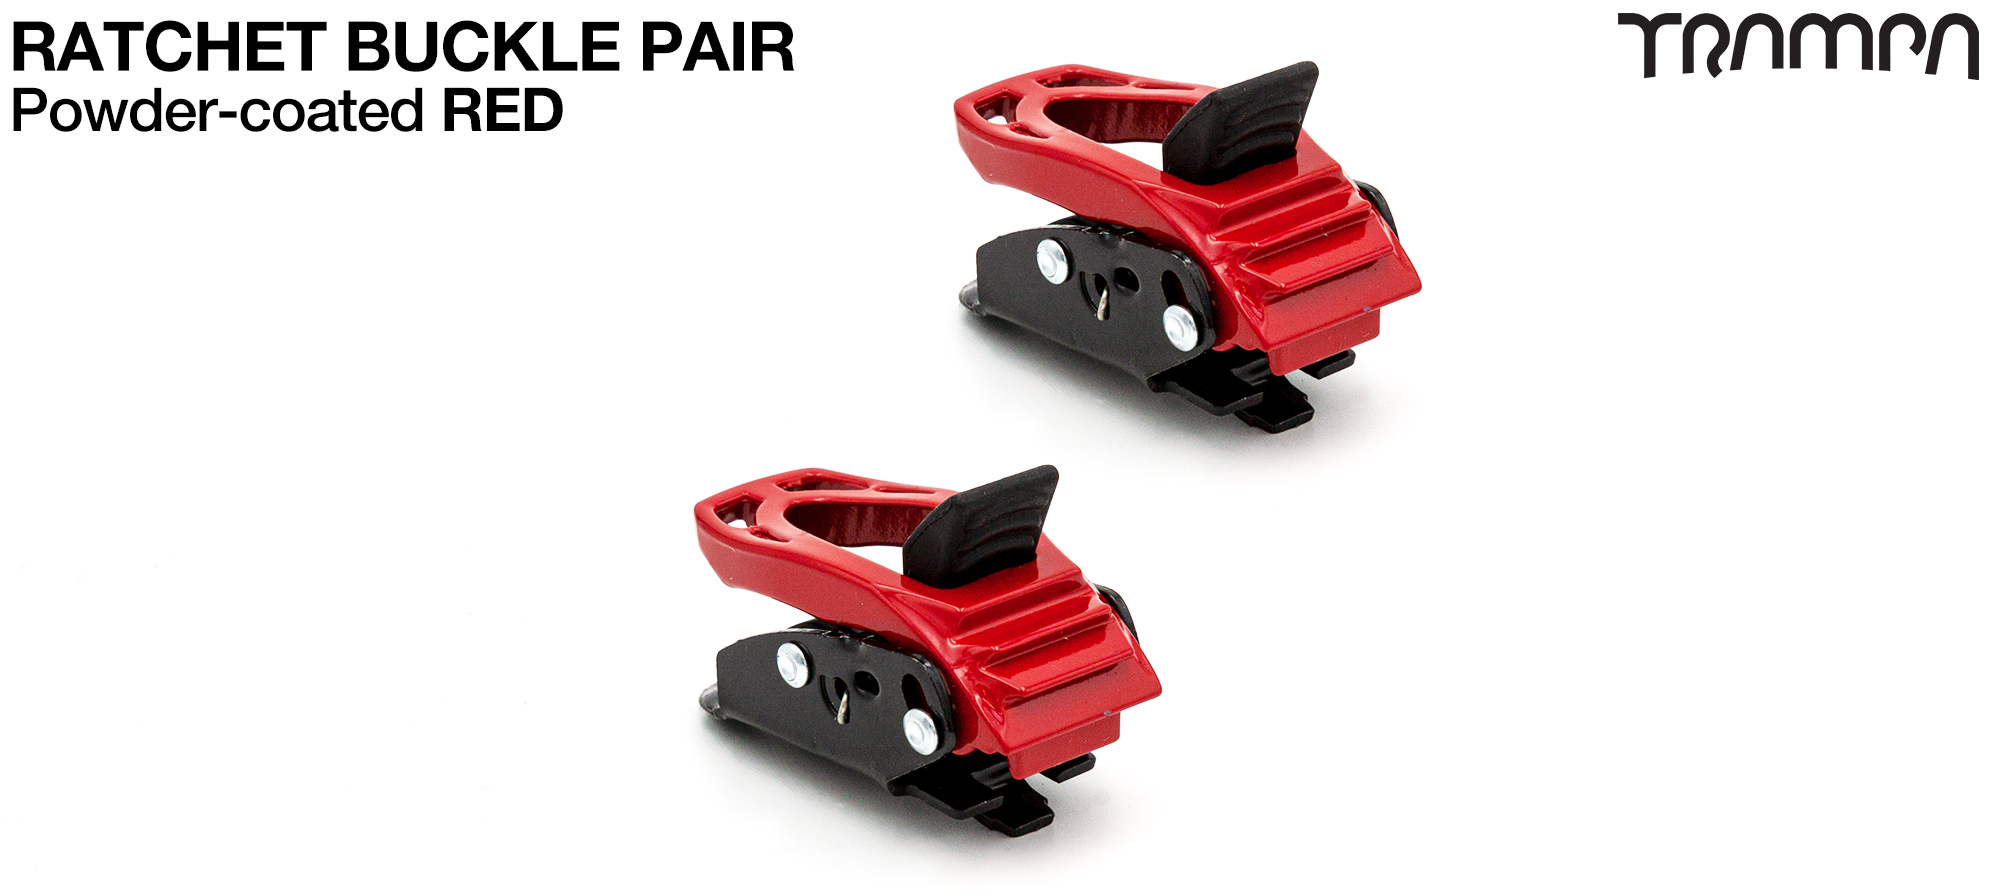 RED Powder Coated Ratchet Buckles